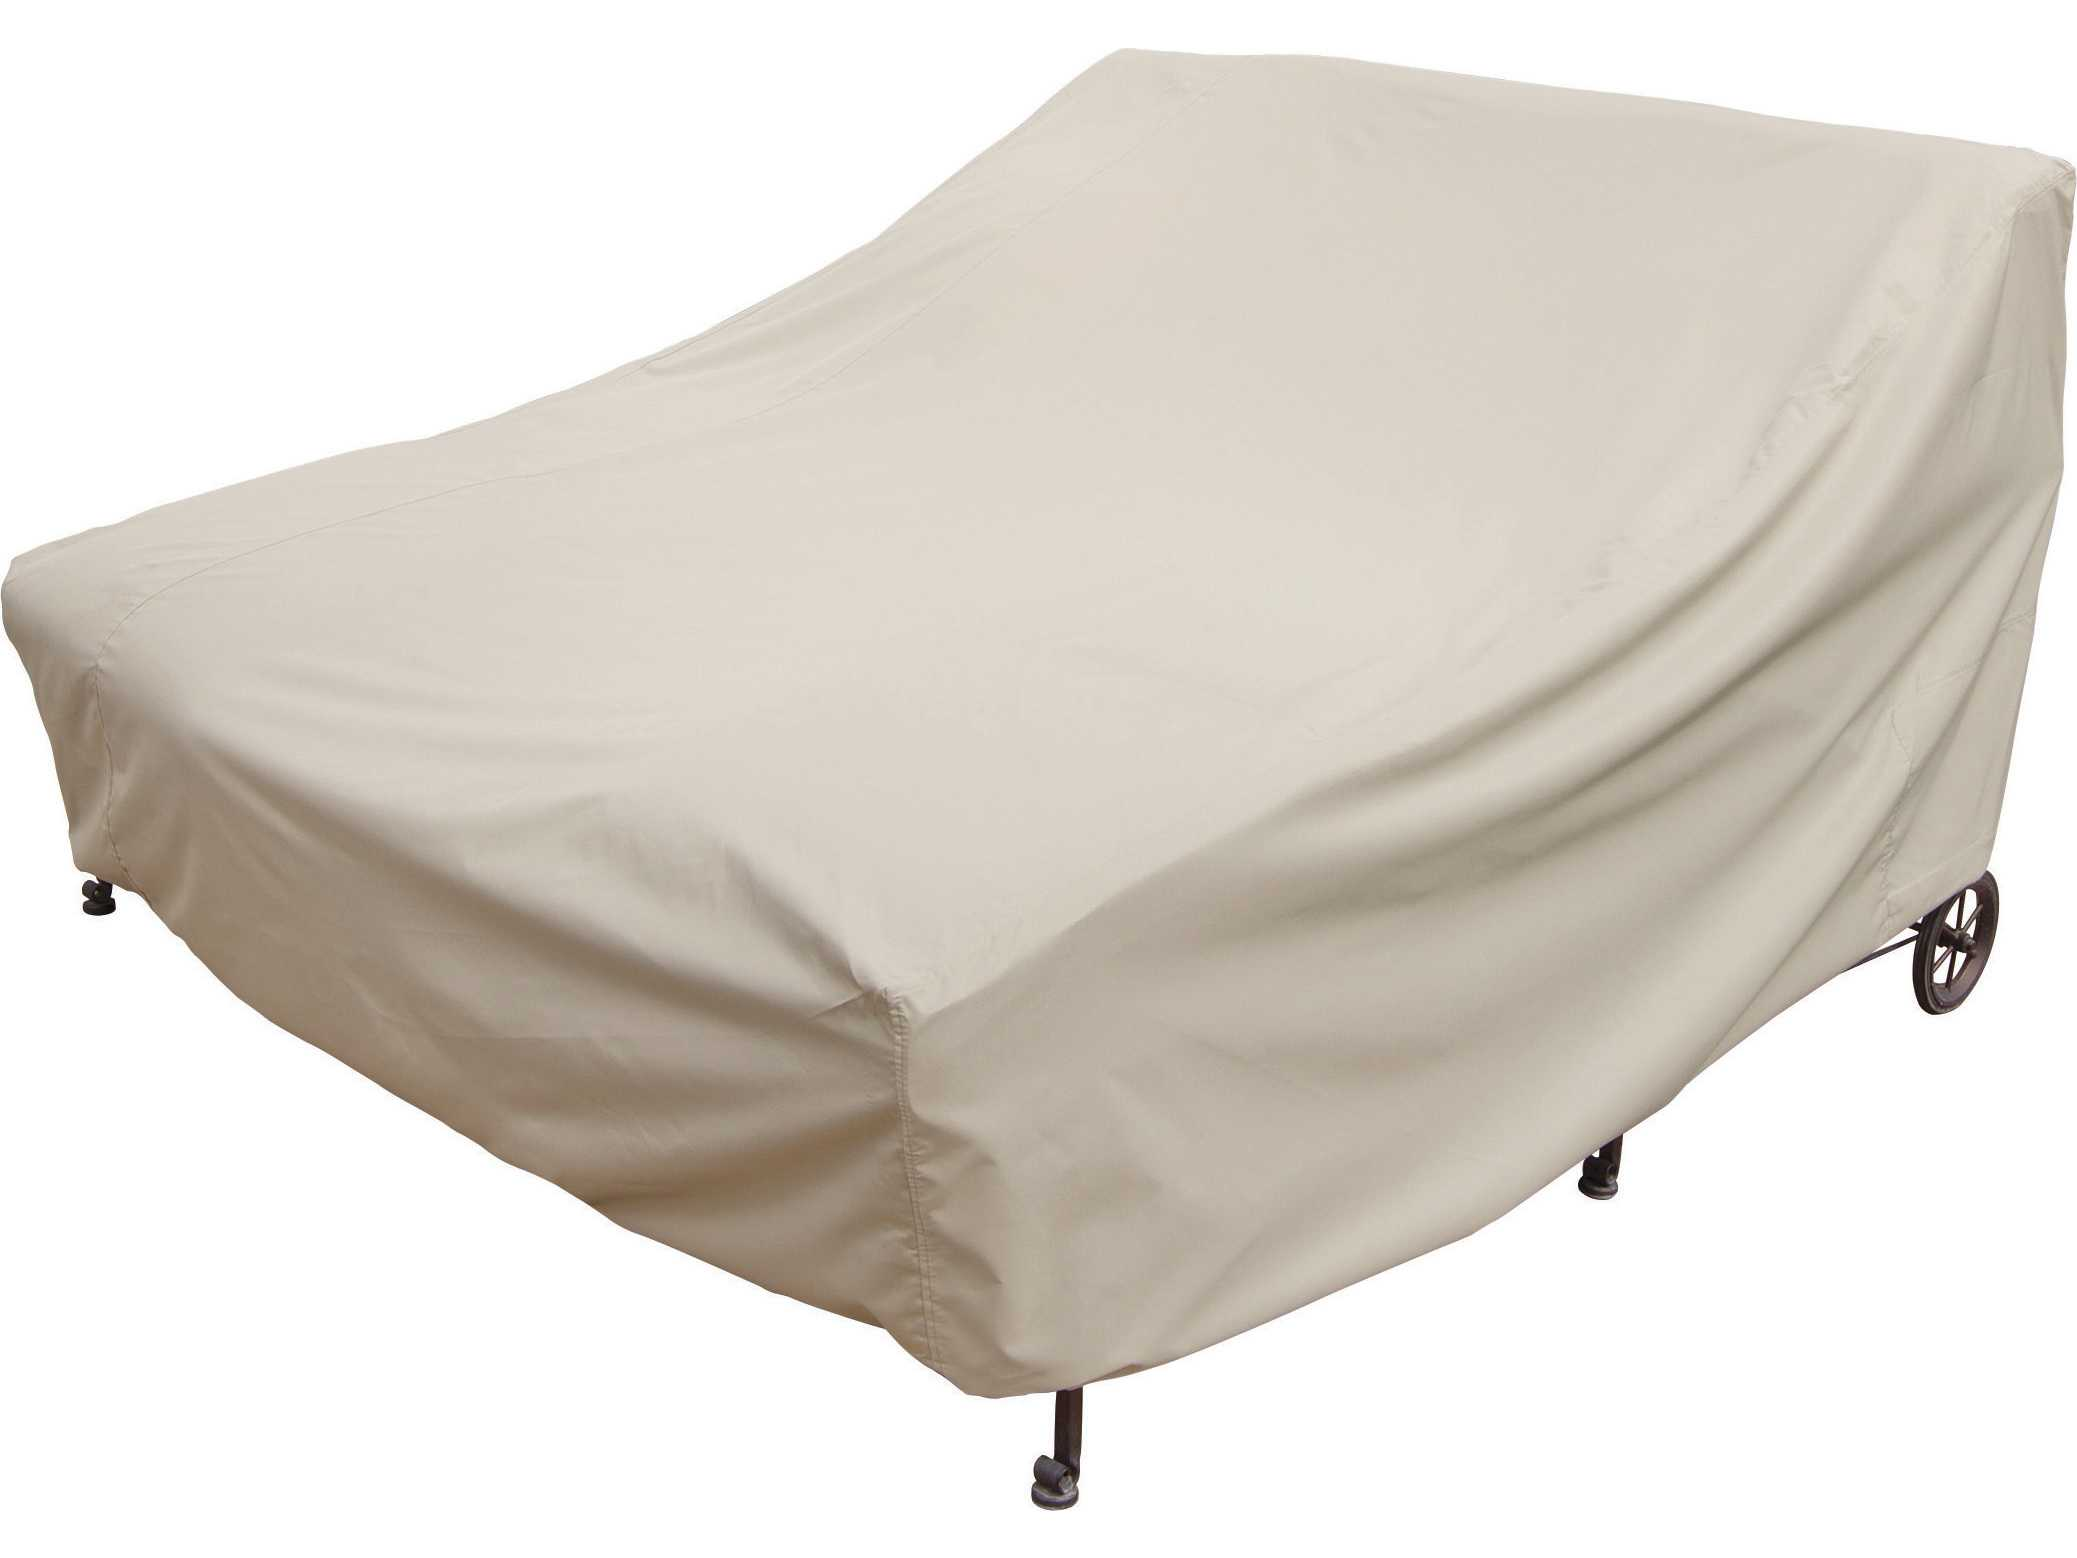 Treasure garden double chaise lounge cover cp141 for Treasure garden patio furniture covers